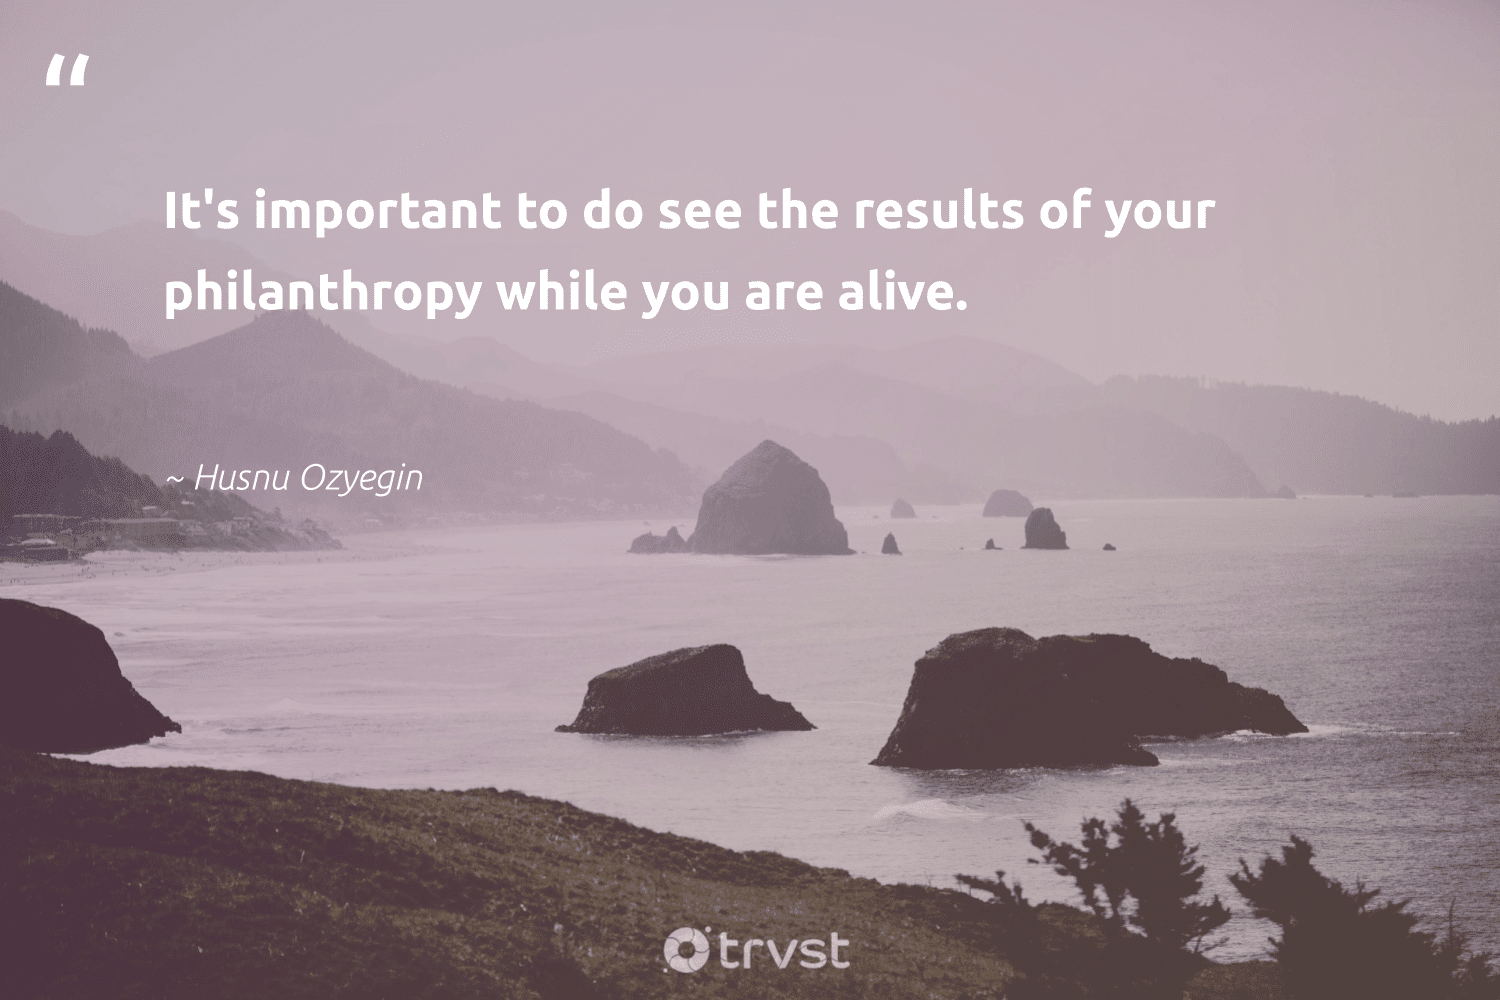 """""""It's important to do see the results of your philanthropy while you are alive.""""  - Husnu Ozyegin #trvst #quotes #philanthropy #results #philanthropic #giveforthefuture #itscooltobekind #dogood #togetherwecan #changemakers #ecoconscious #beinspired"""